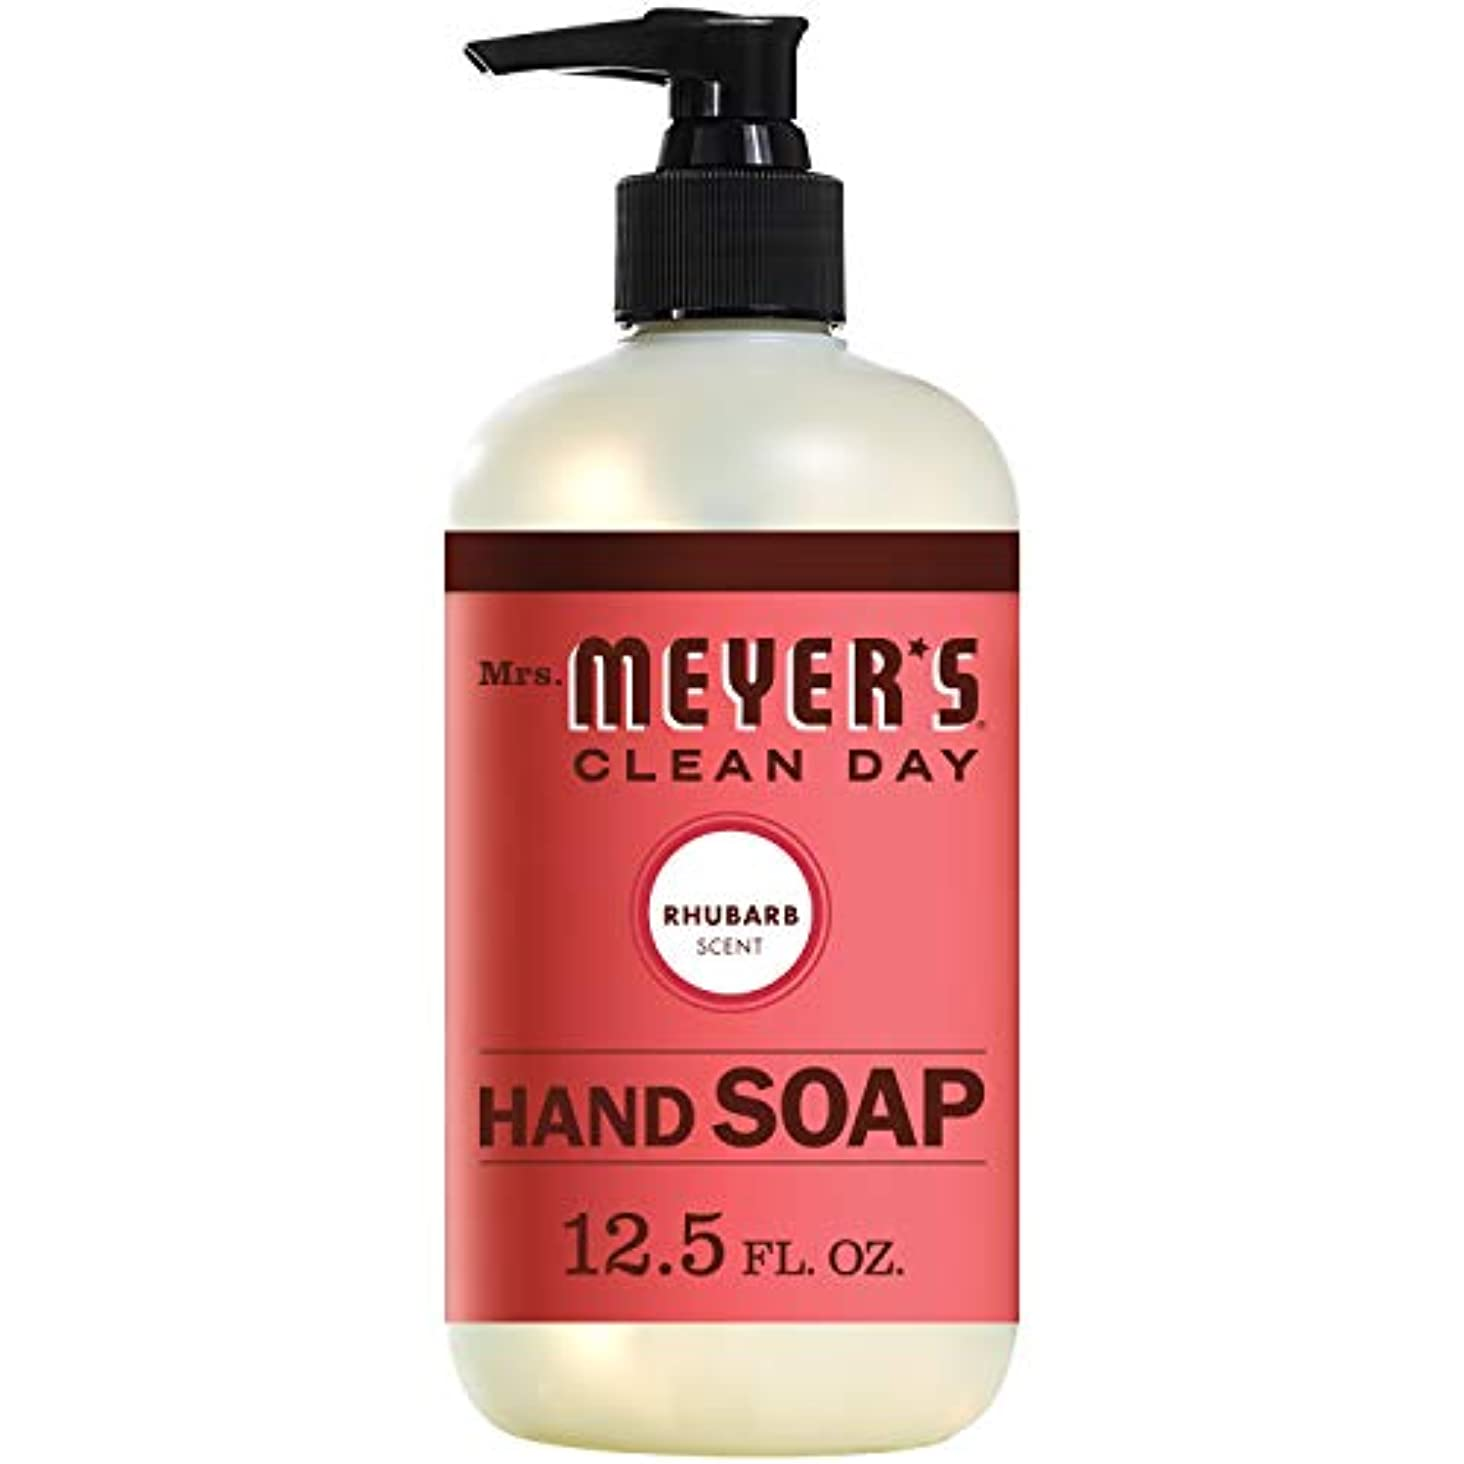 オフェンス損傷ミシン目Mrs. Meyers Clean Day, Liquid Hand Soap, Rhubarb Scent, 12.5 fl oz (370 ml)